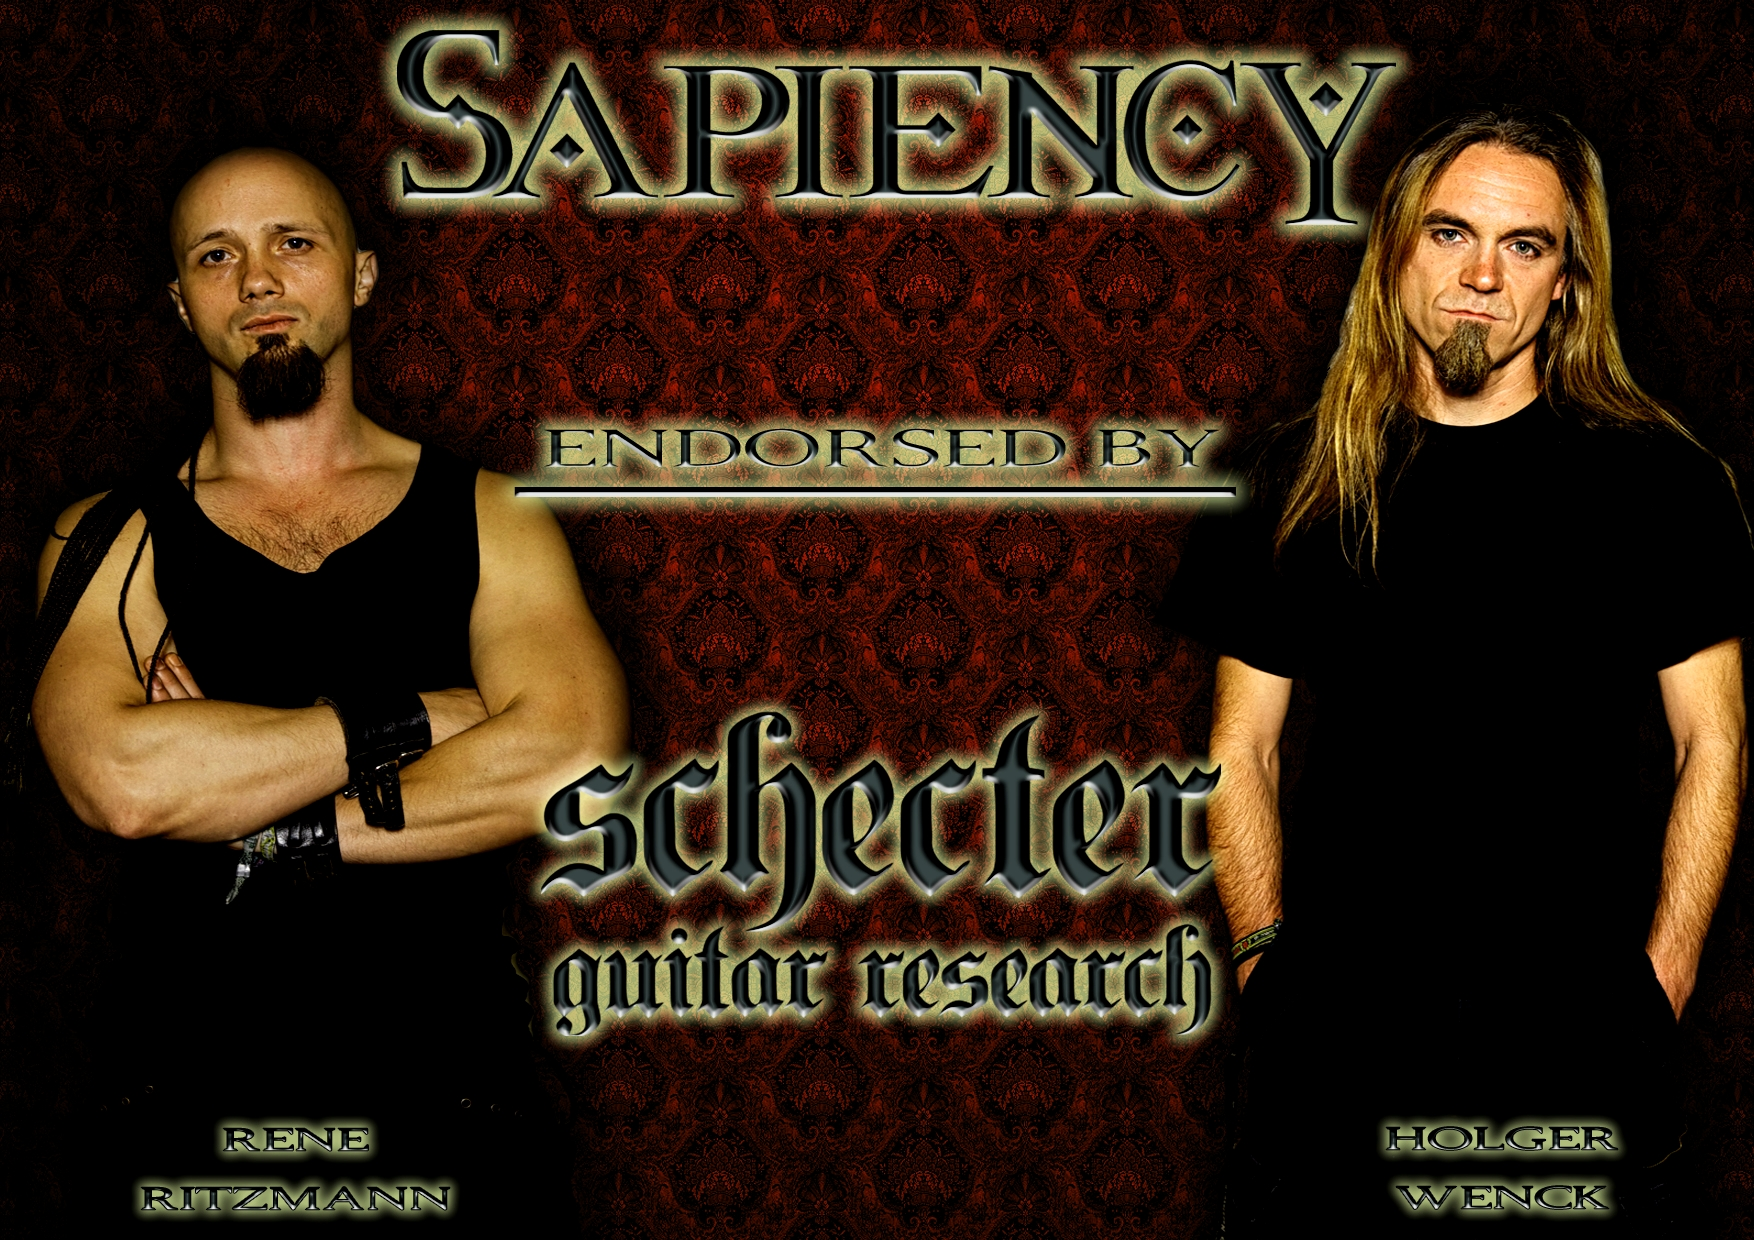 Schecter10_edit1